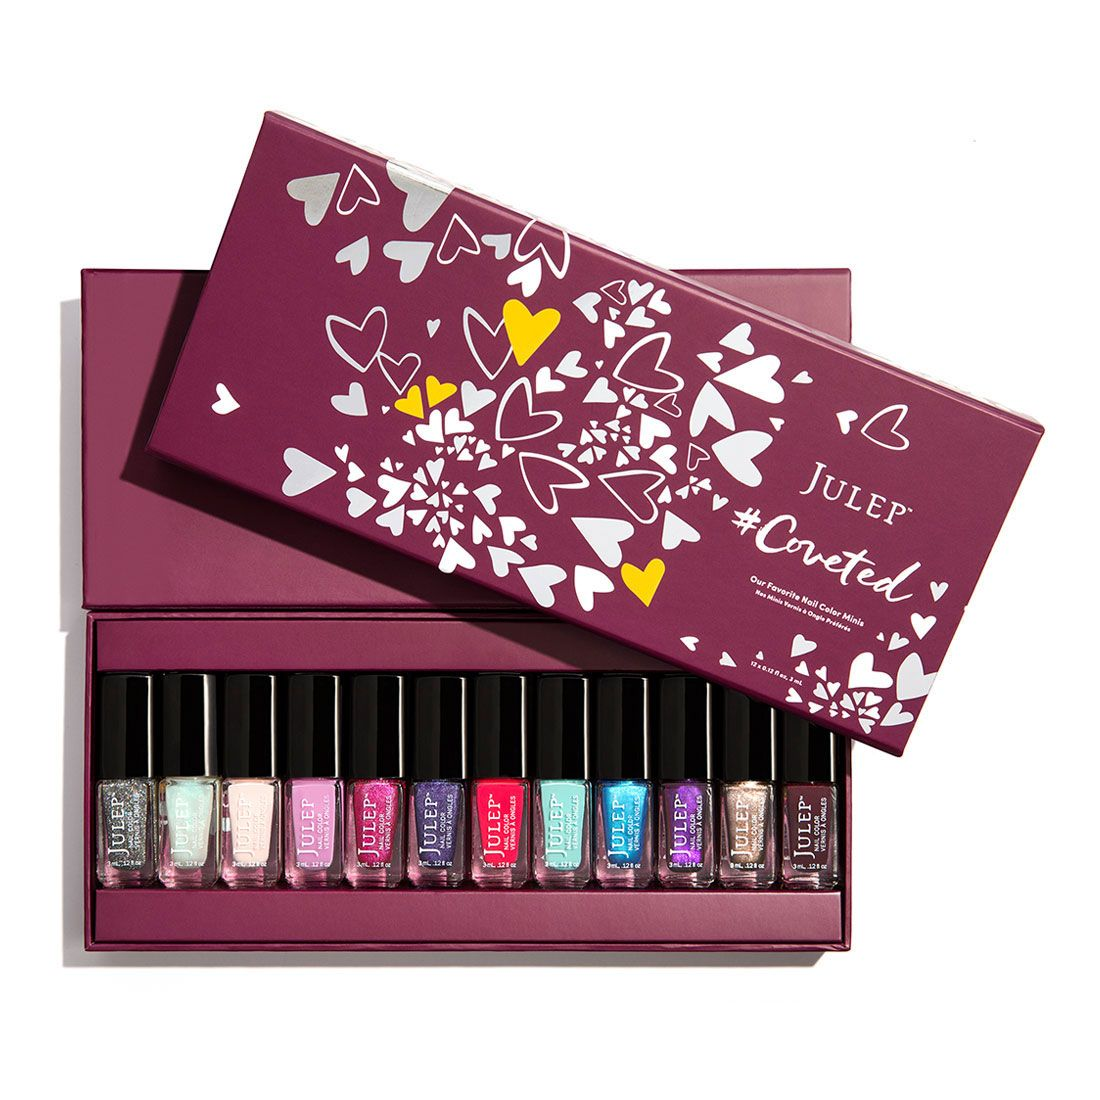 Coveted Beauty boxes monthly, Polish gift, Holiday gifts